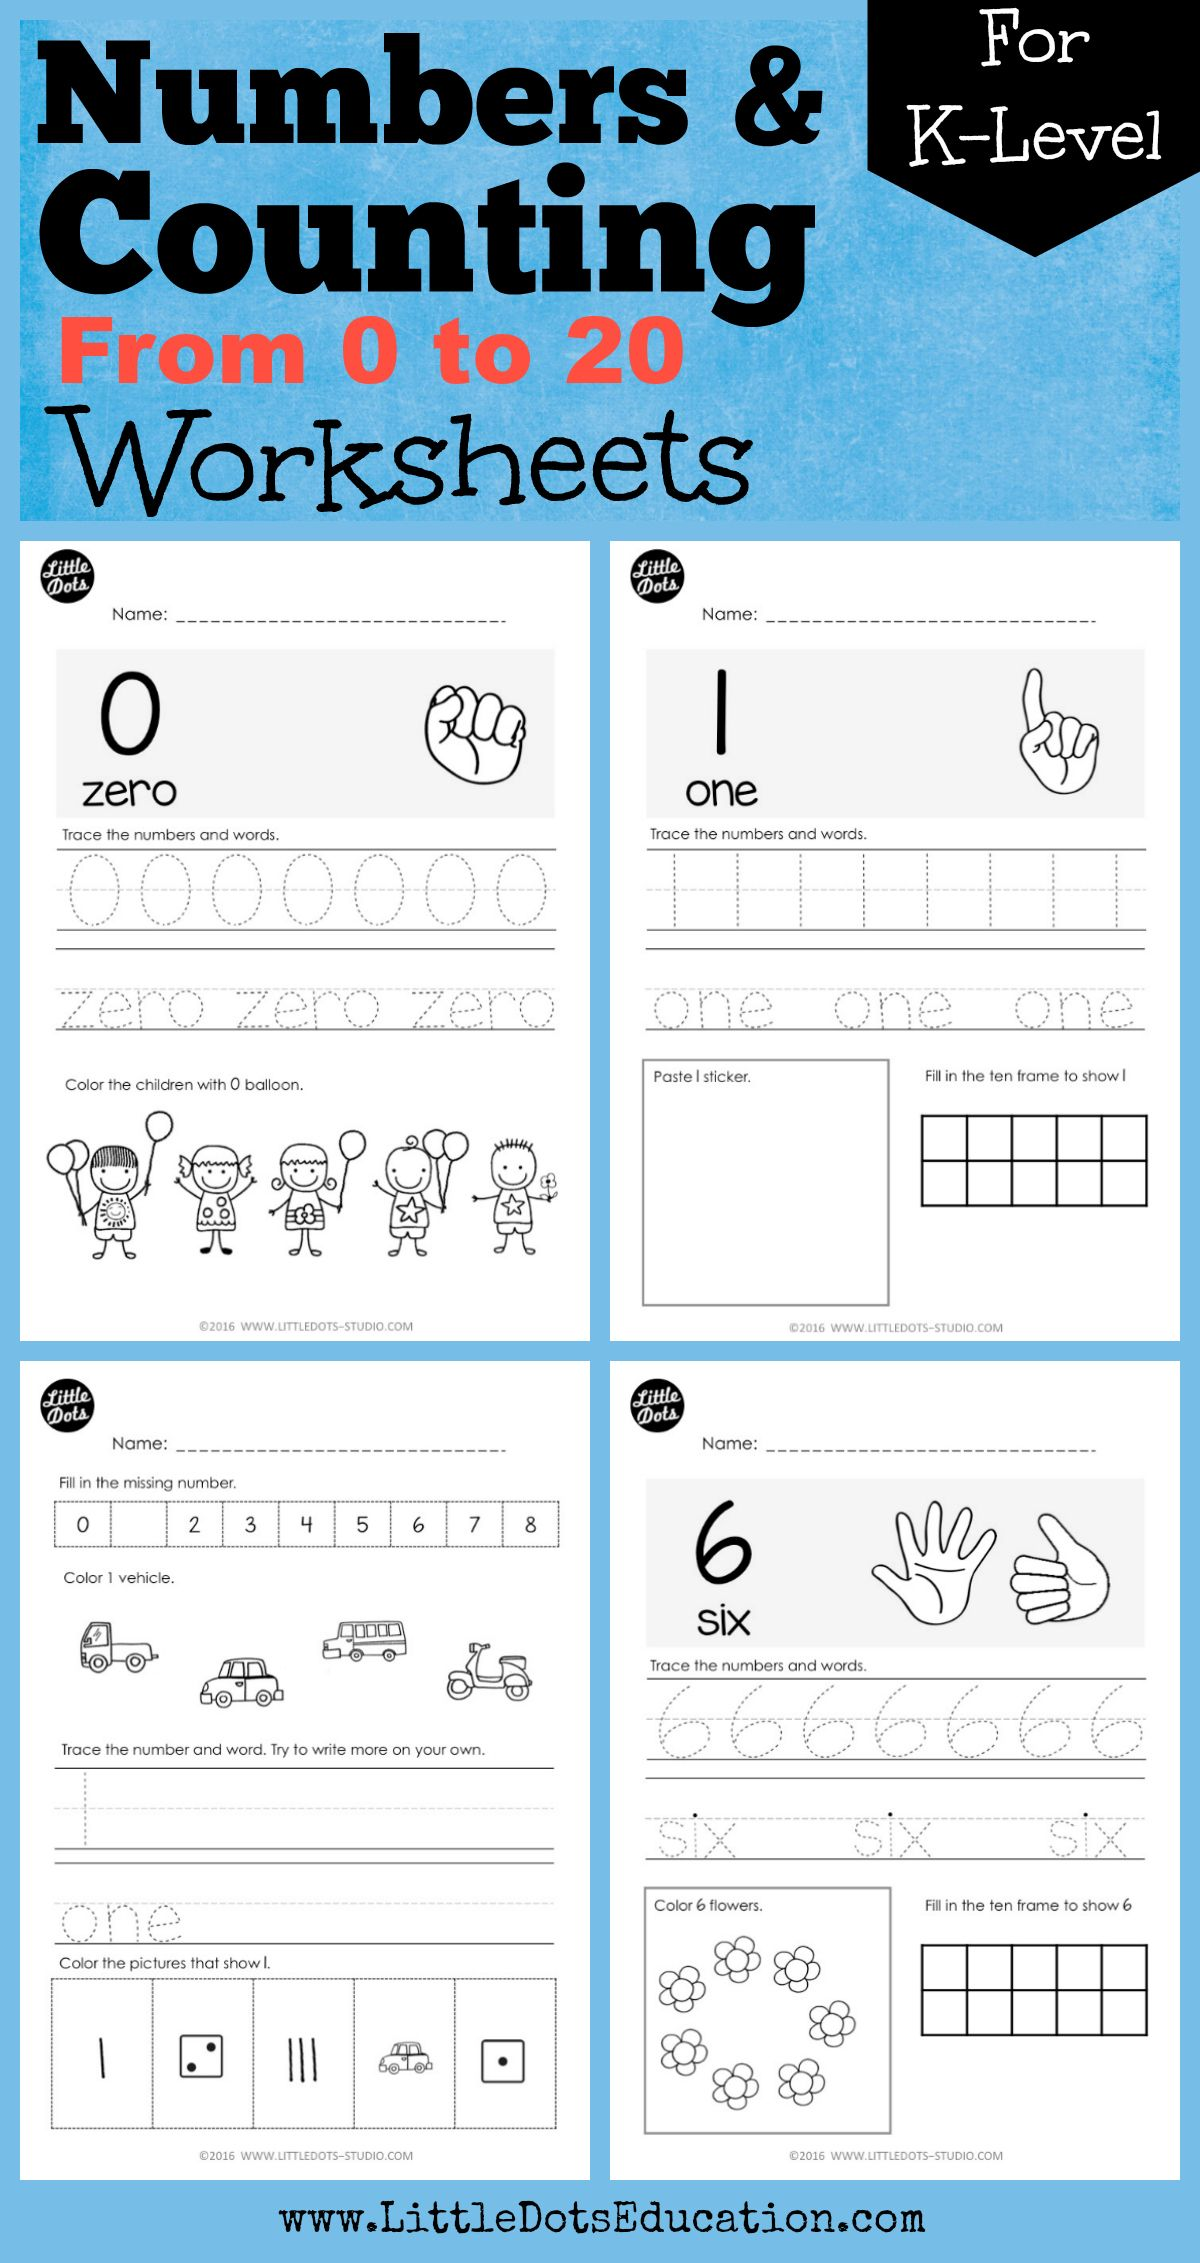 Download Numbers And Counting Worksheets From 0 To 20 Suitable For Preschool Or Kindergarten